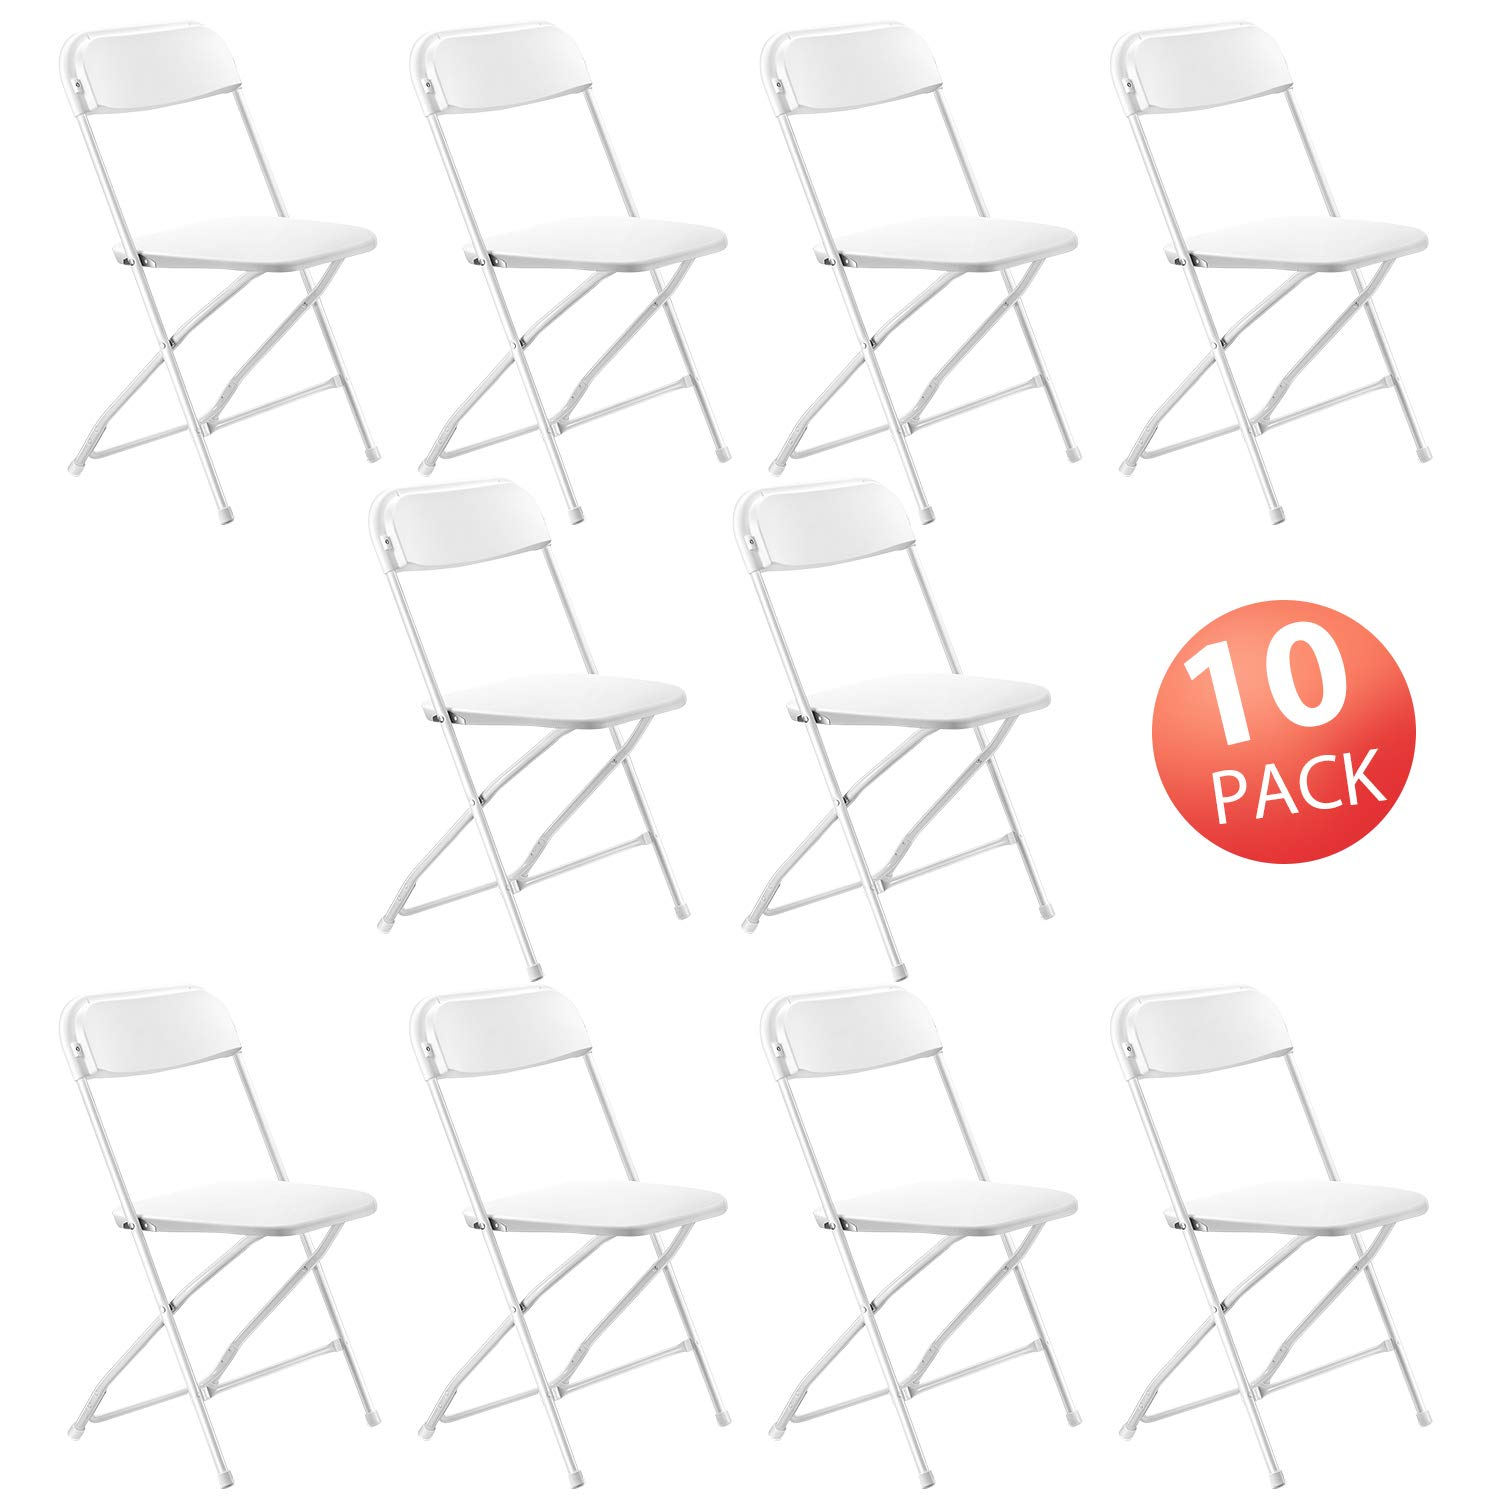 Kealive Folding Chair 10 Pack Fold Chair 330 lbs Weight Capacity for Events, Premium Lifetime Fold Up Chair Portable 18'' L x 18'' W x 31'' H, White by kealive